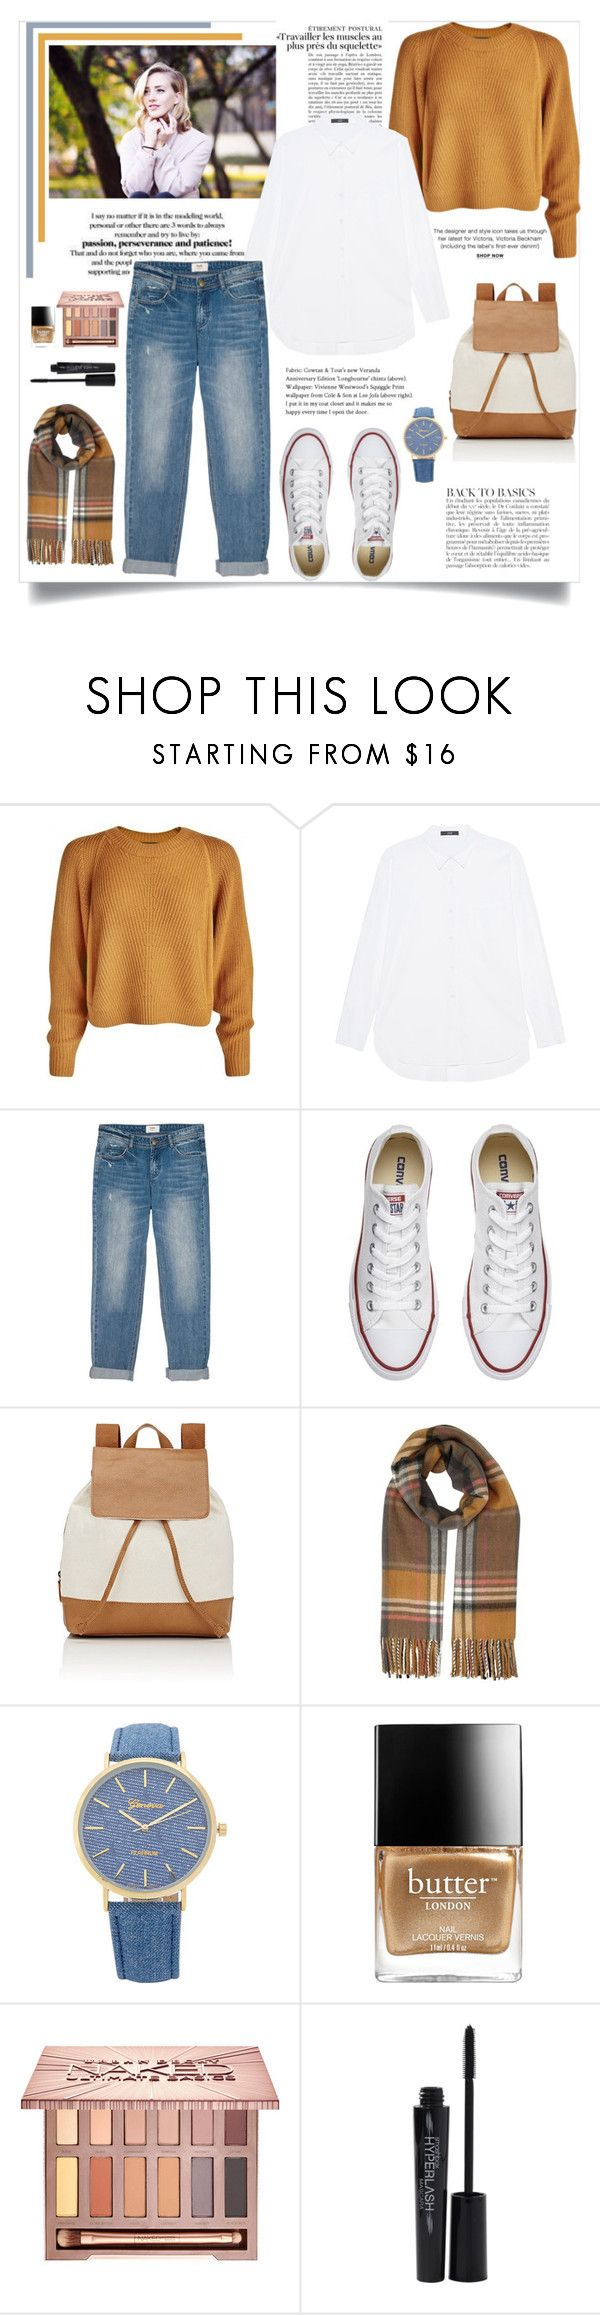 """I don't know what to call it"" by mossoo ❤ liked on Polyvore featuring Victoria Beckham, Steffen Schraut, Converse, Barneys New York, Anja, Miss Selfridge, Butter London, Urban Decay and Smashbox"